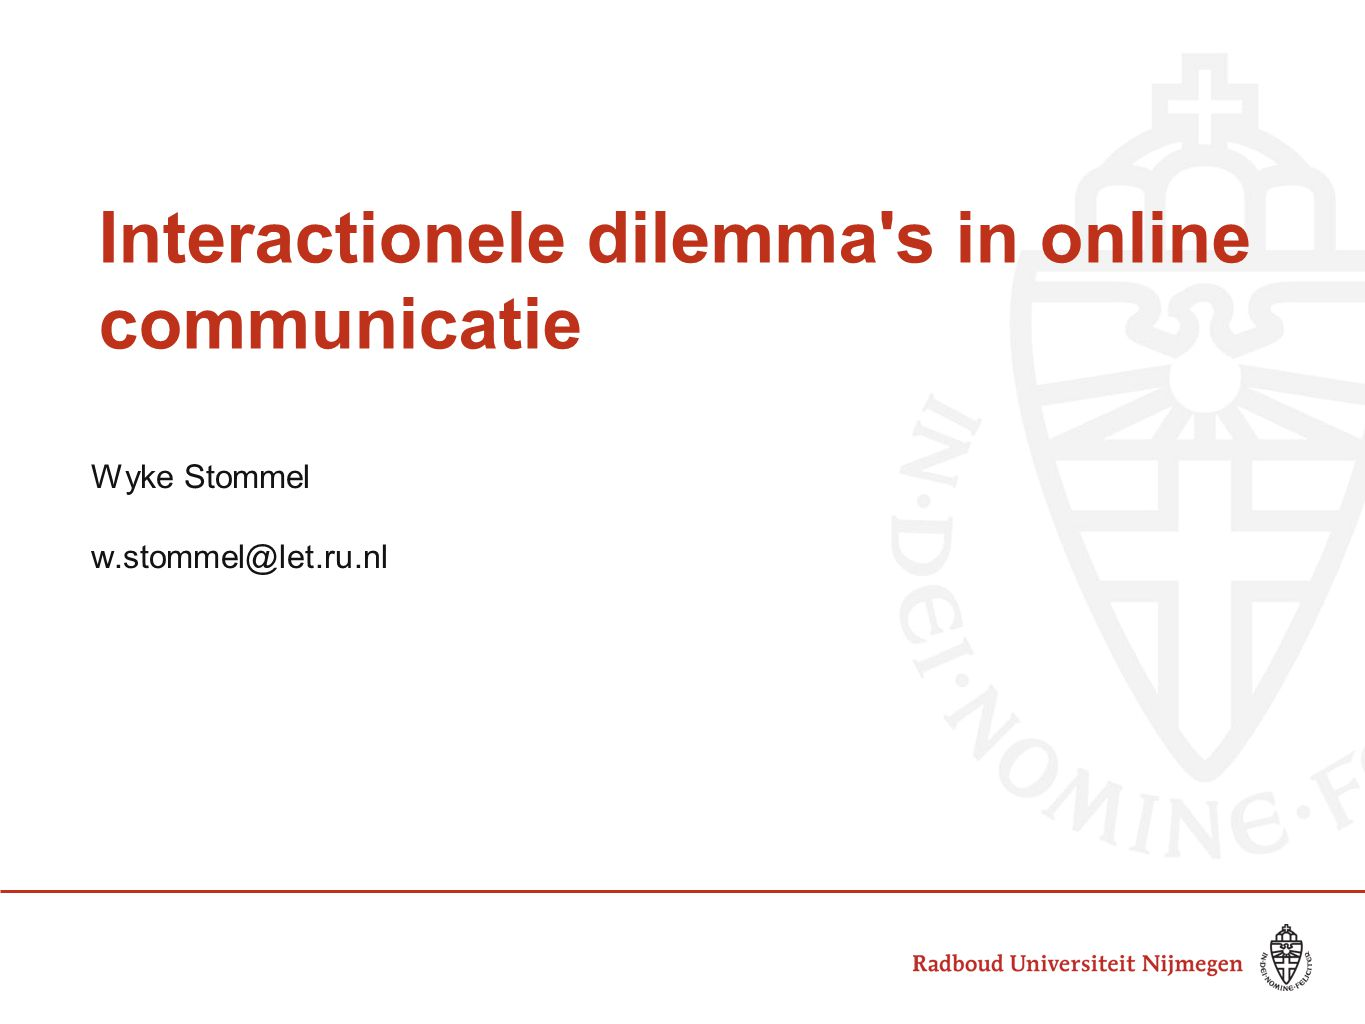 Interactionele dilemma s in online communicatie